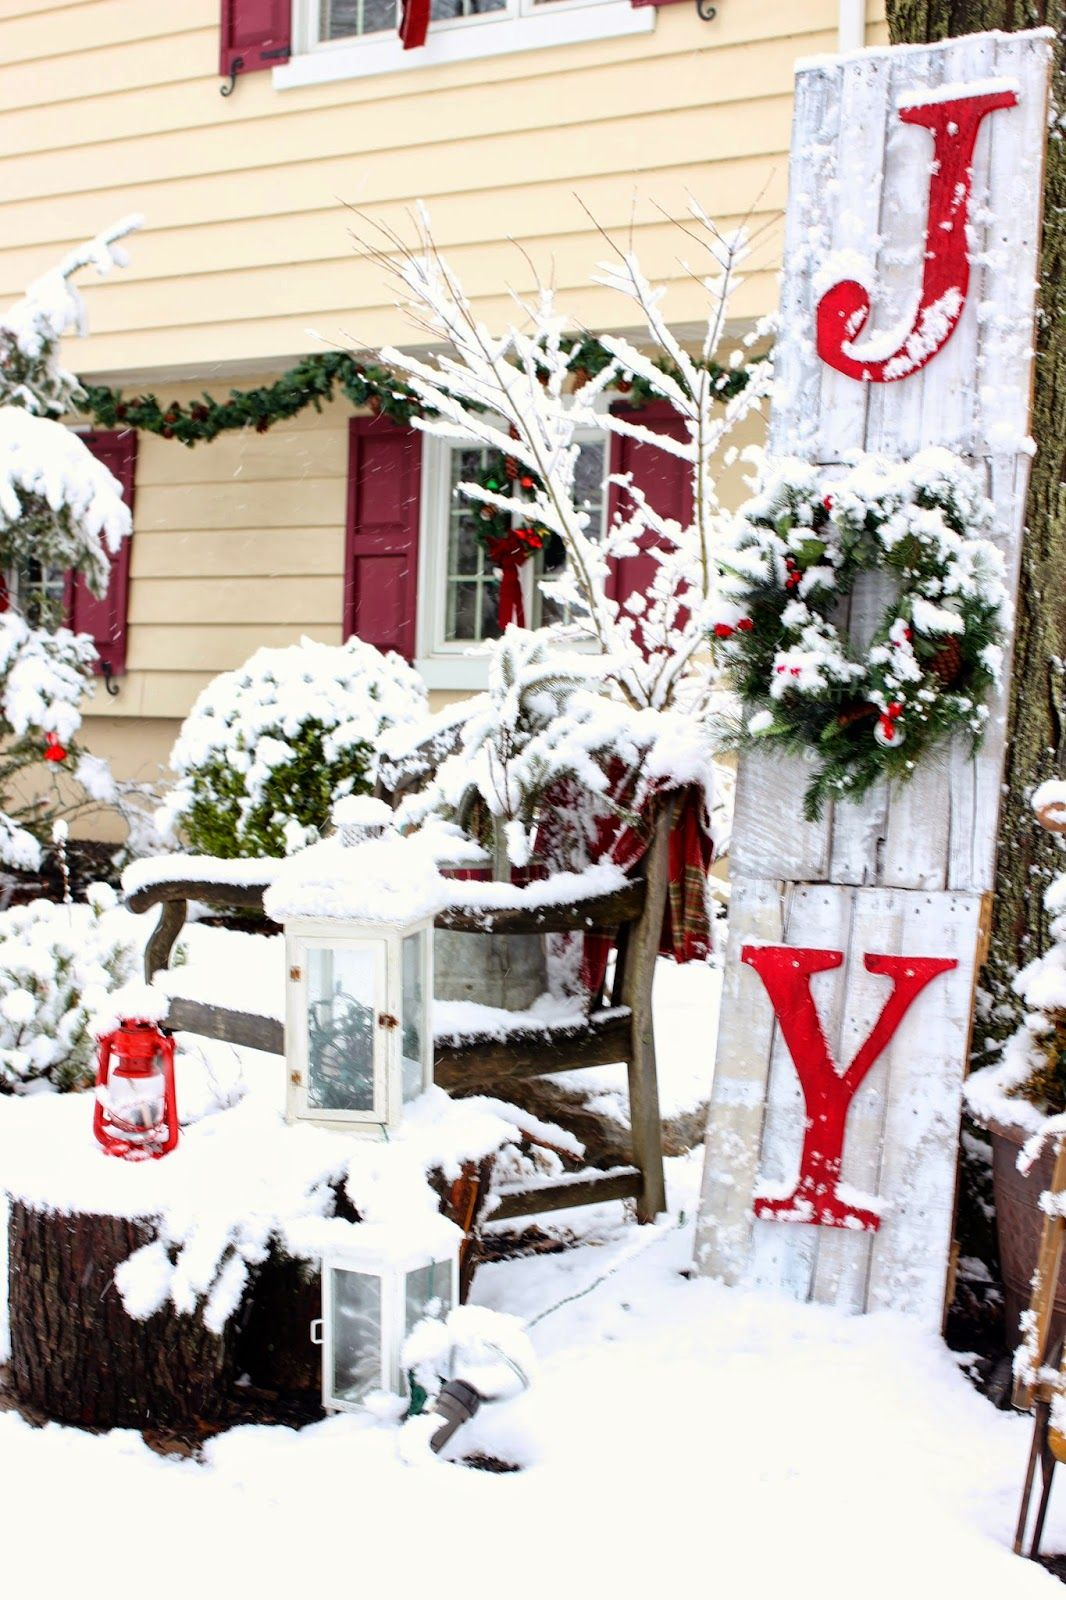 30 Best Outdoor Christmas Decorations - Christmas Yard Decorating Ideas